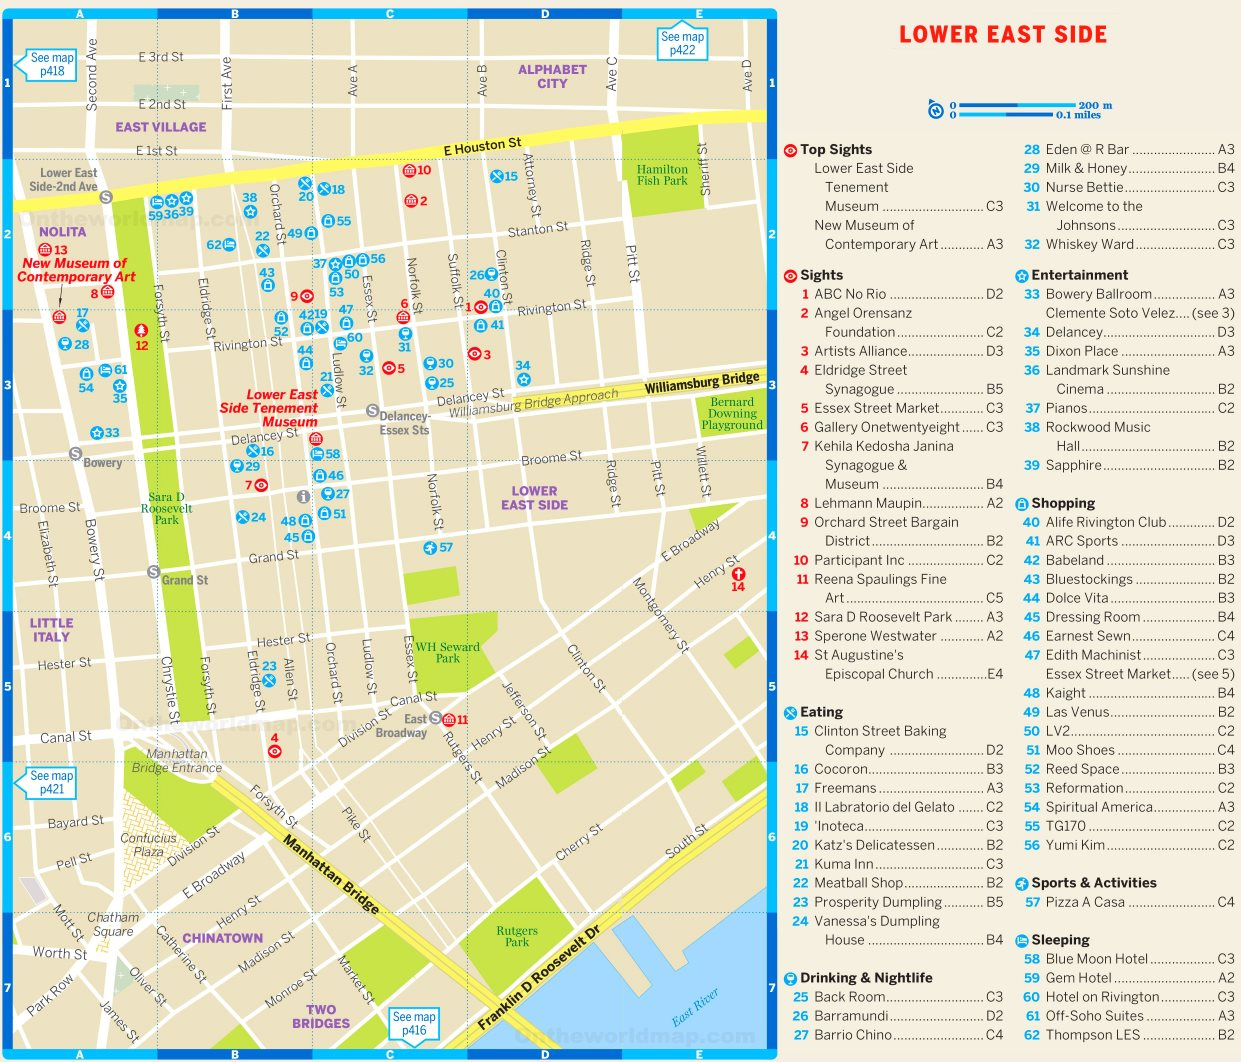 Map of Lower East Side